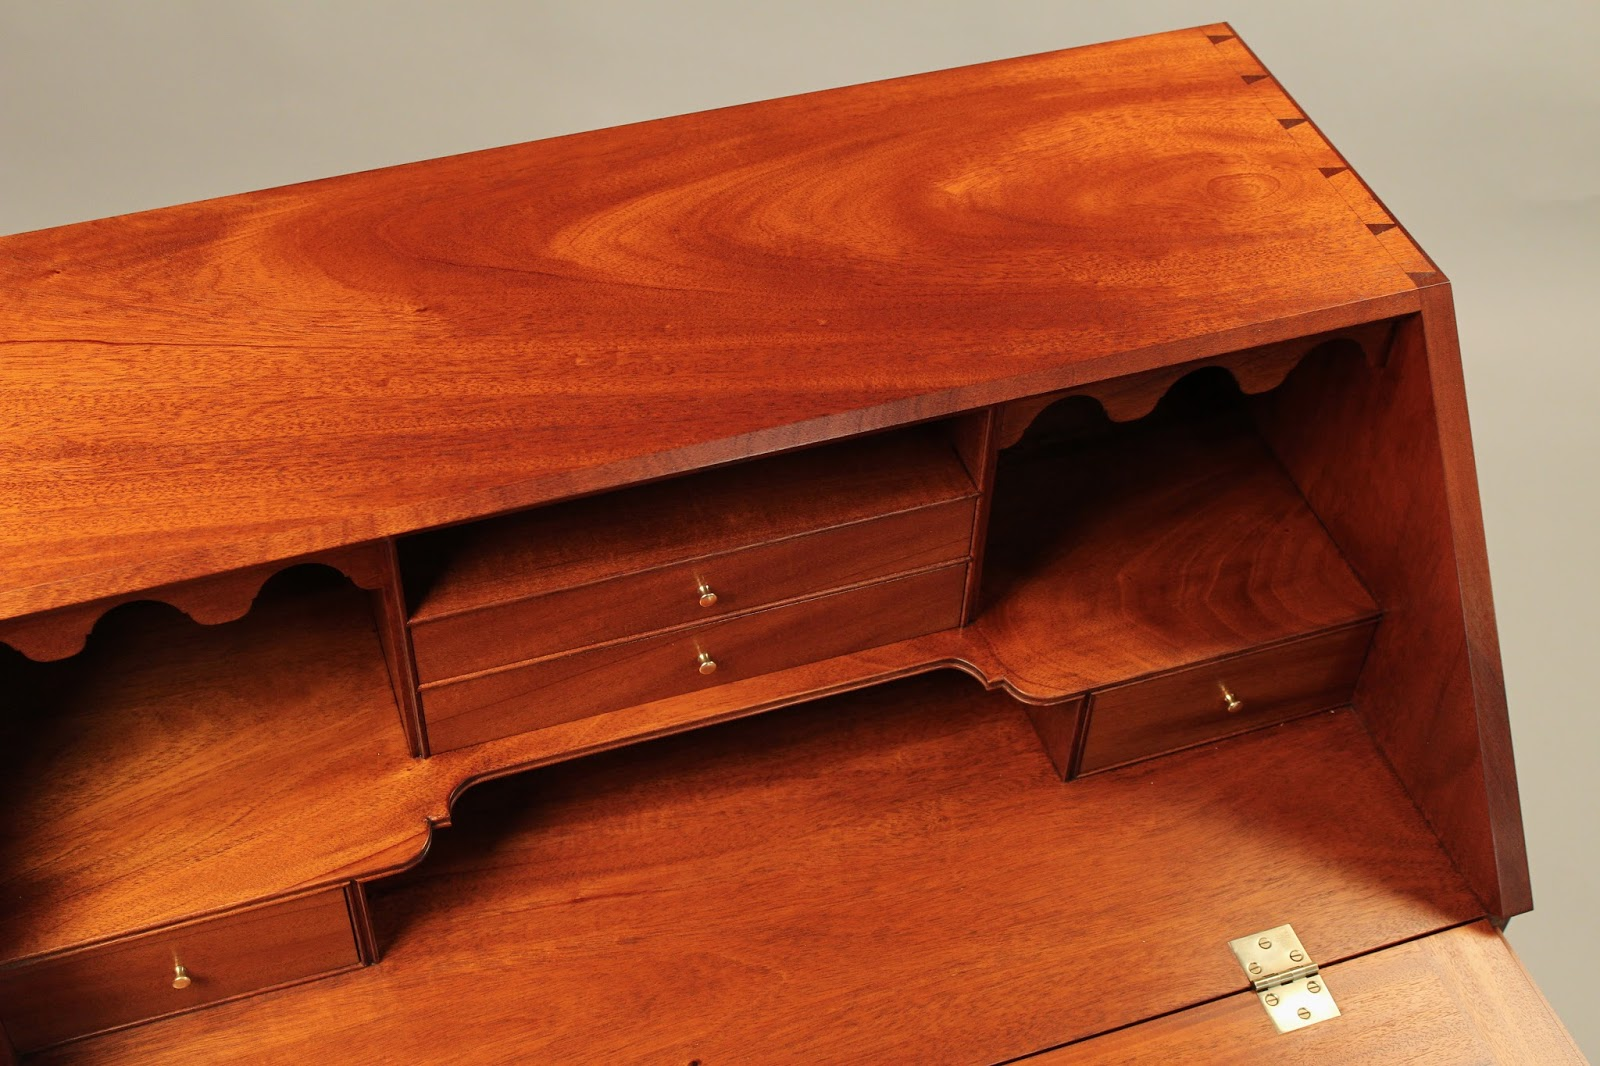 Handmade Desk interior